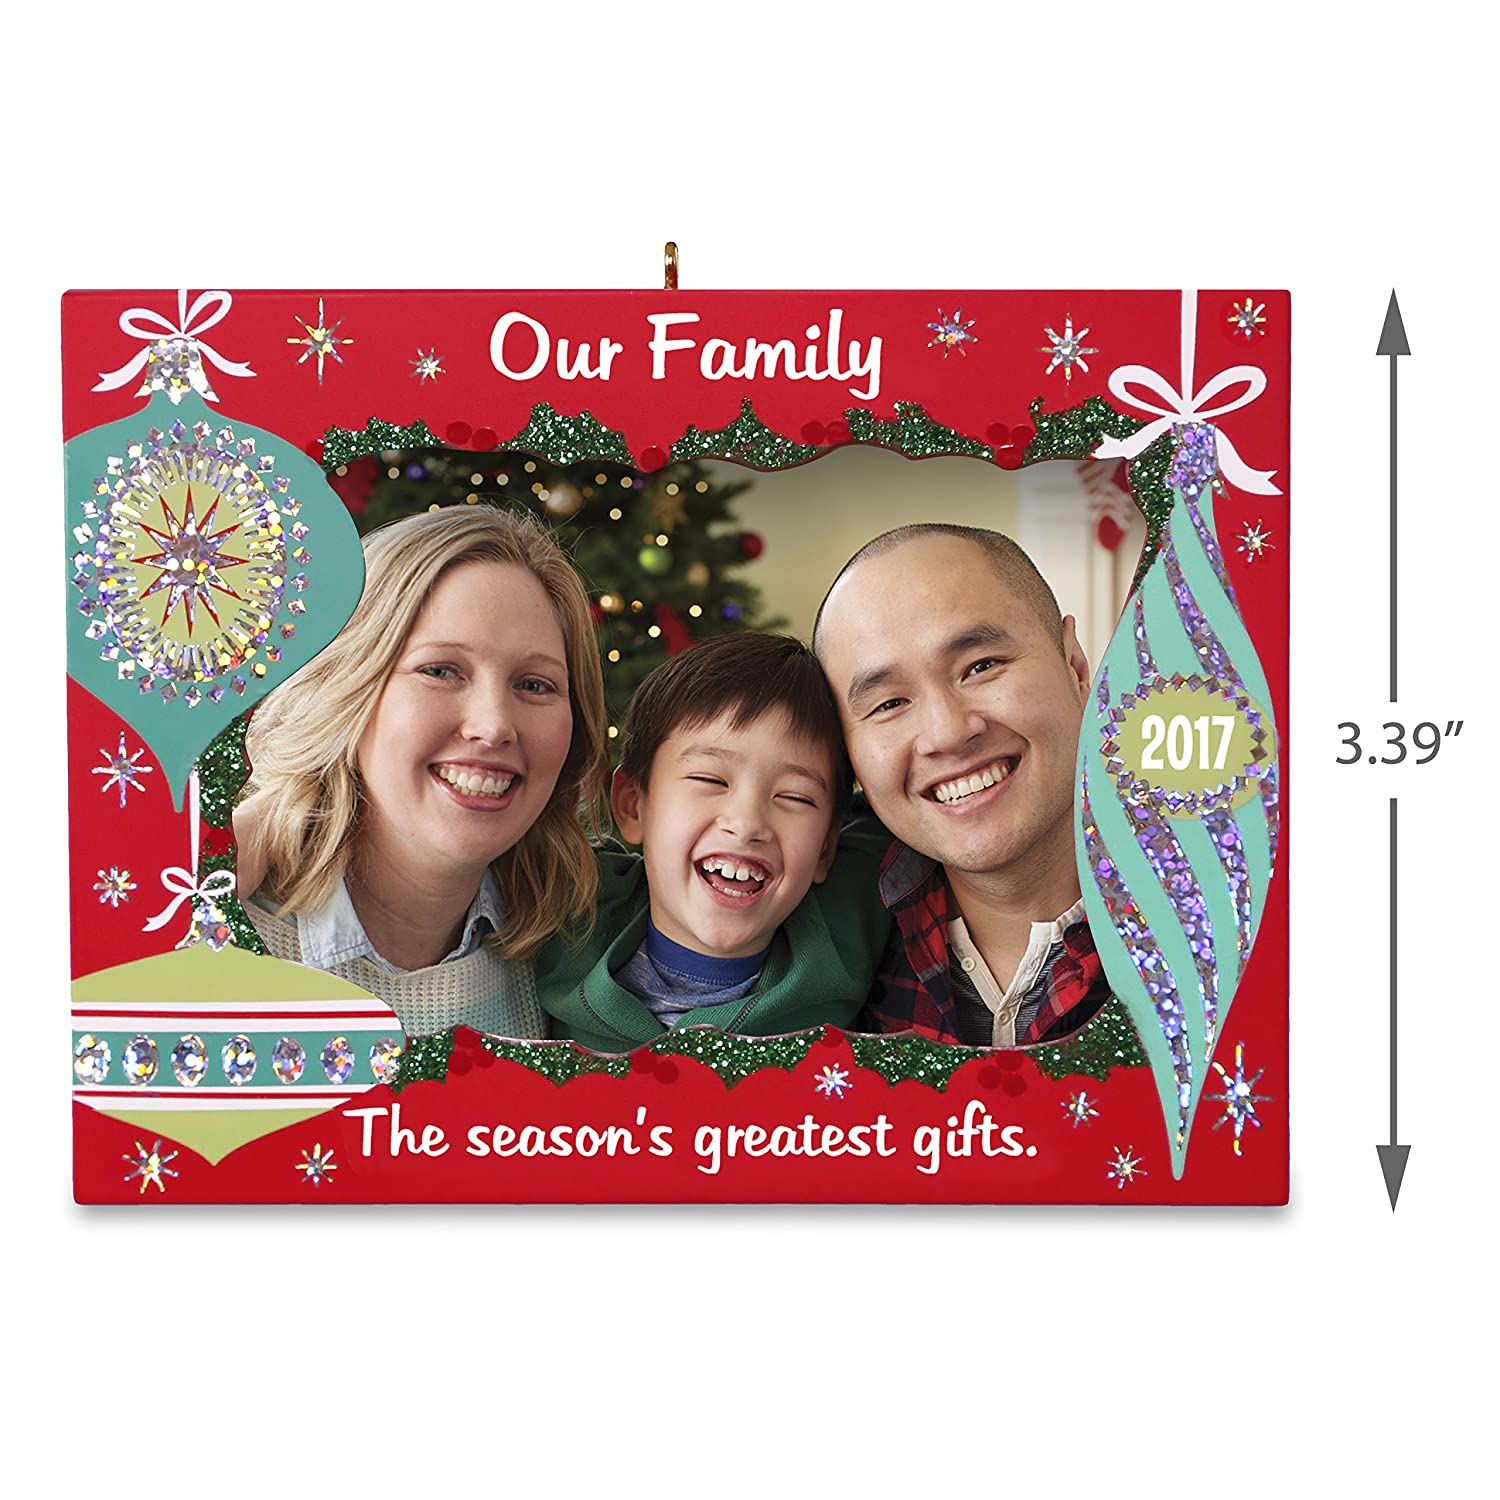 Amazon.com: Hallmark Keepsake 2017 Our Family Greatest Gifts Picture ...